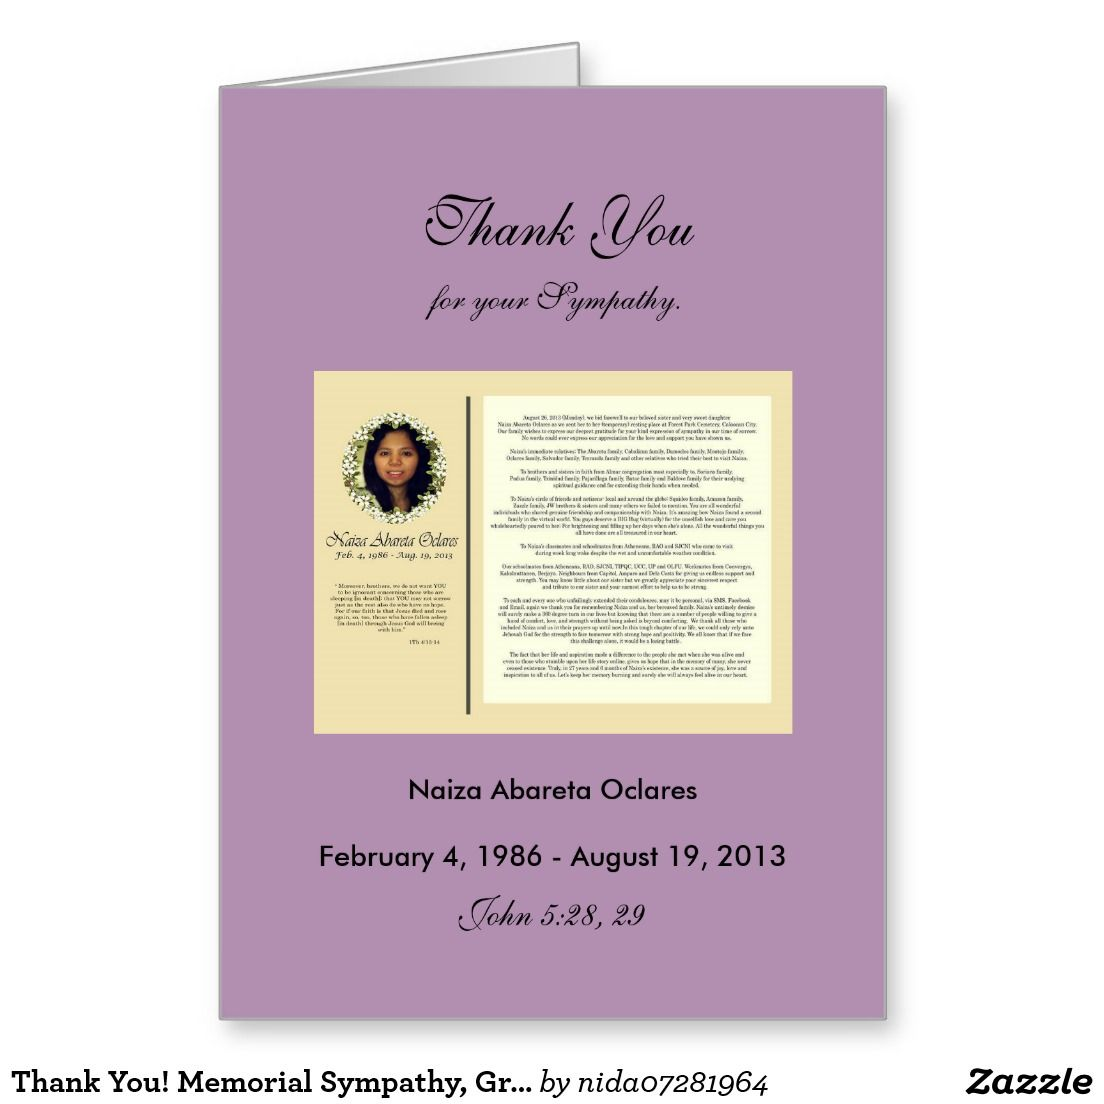 Thank you memorial sympathy greeting card thank you memorial memorial sympathy greeting card kristyandbryce Images